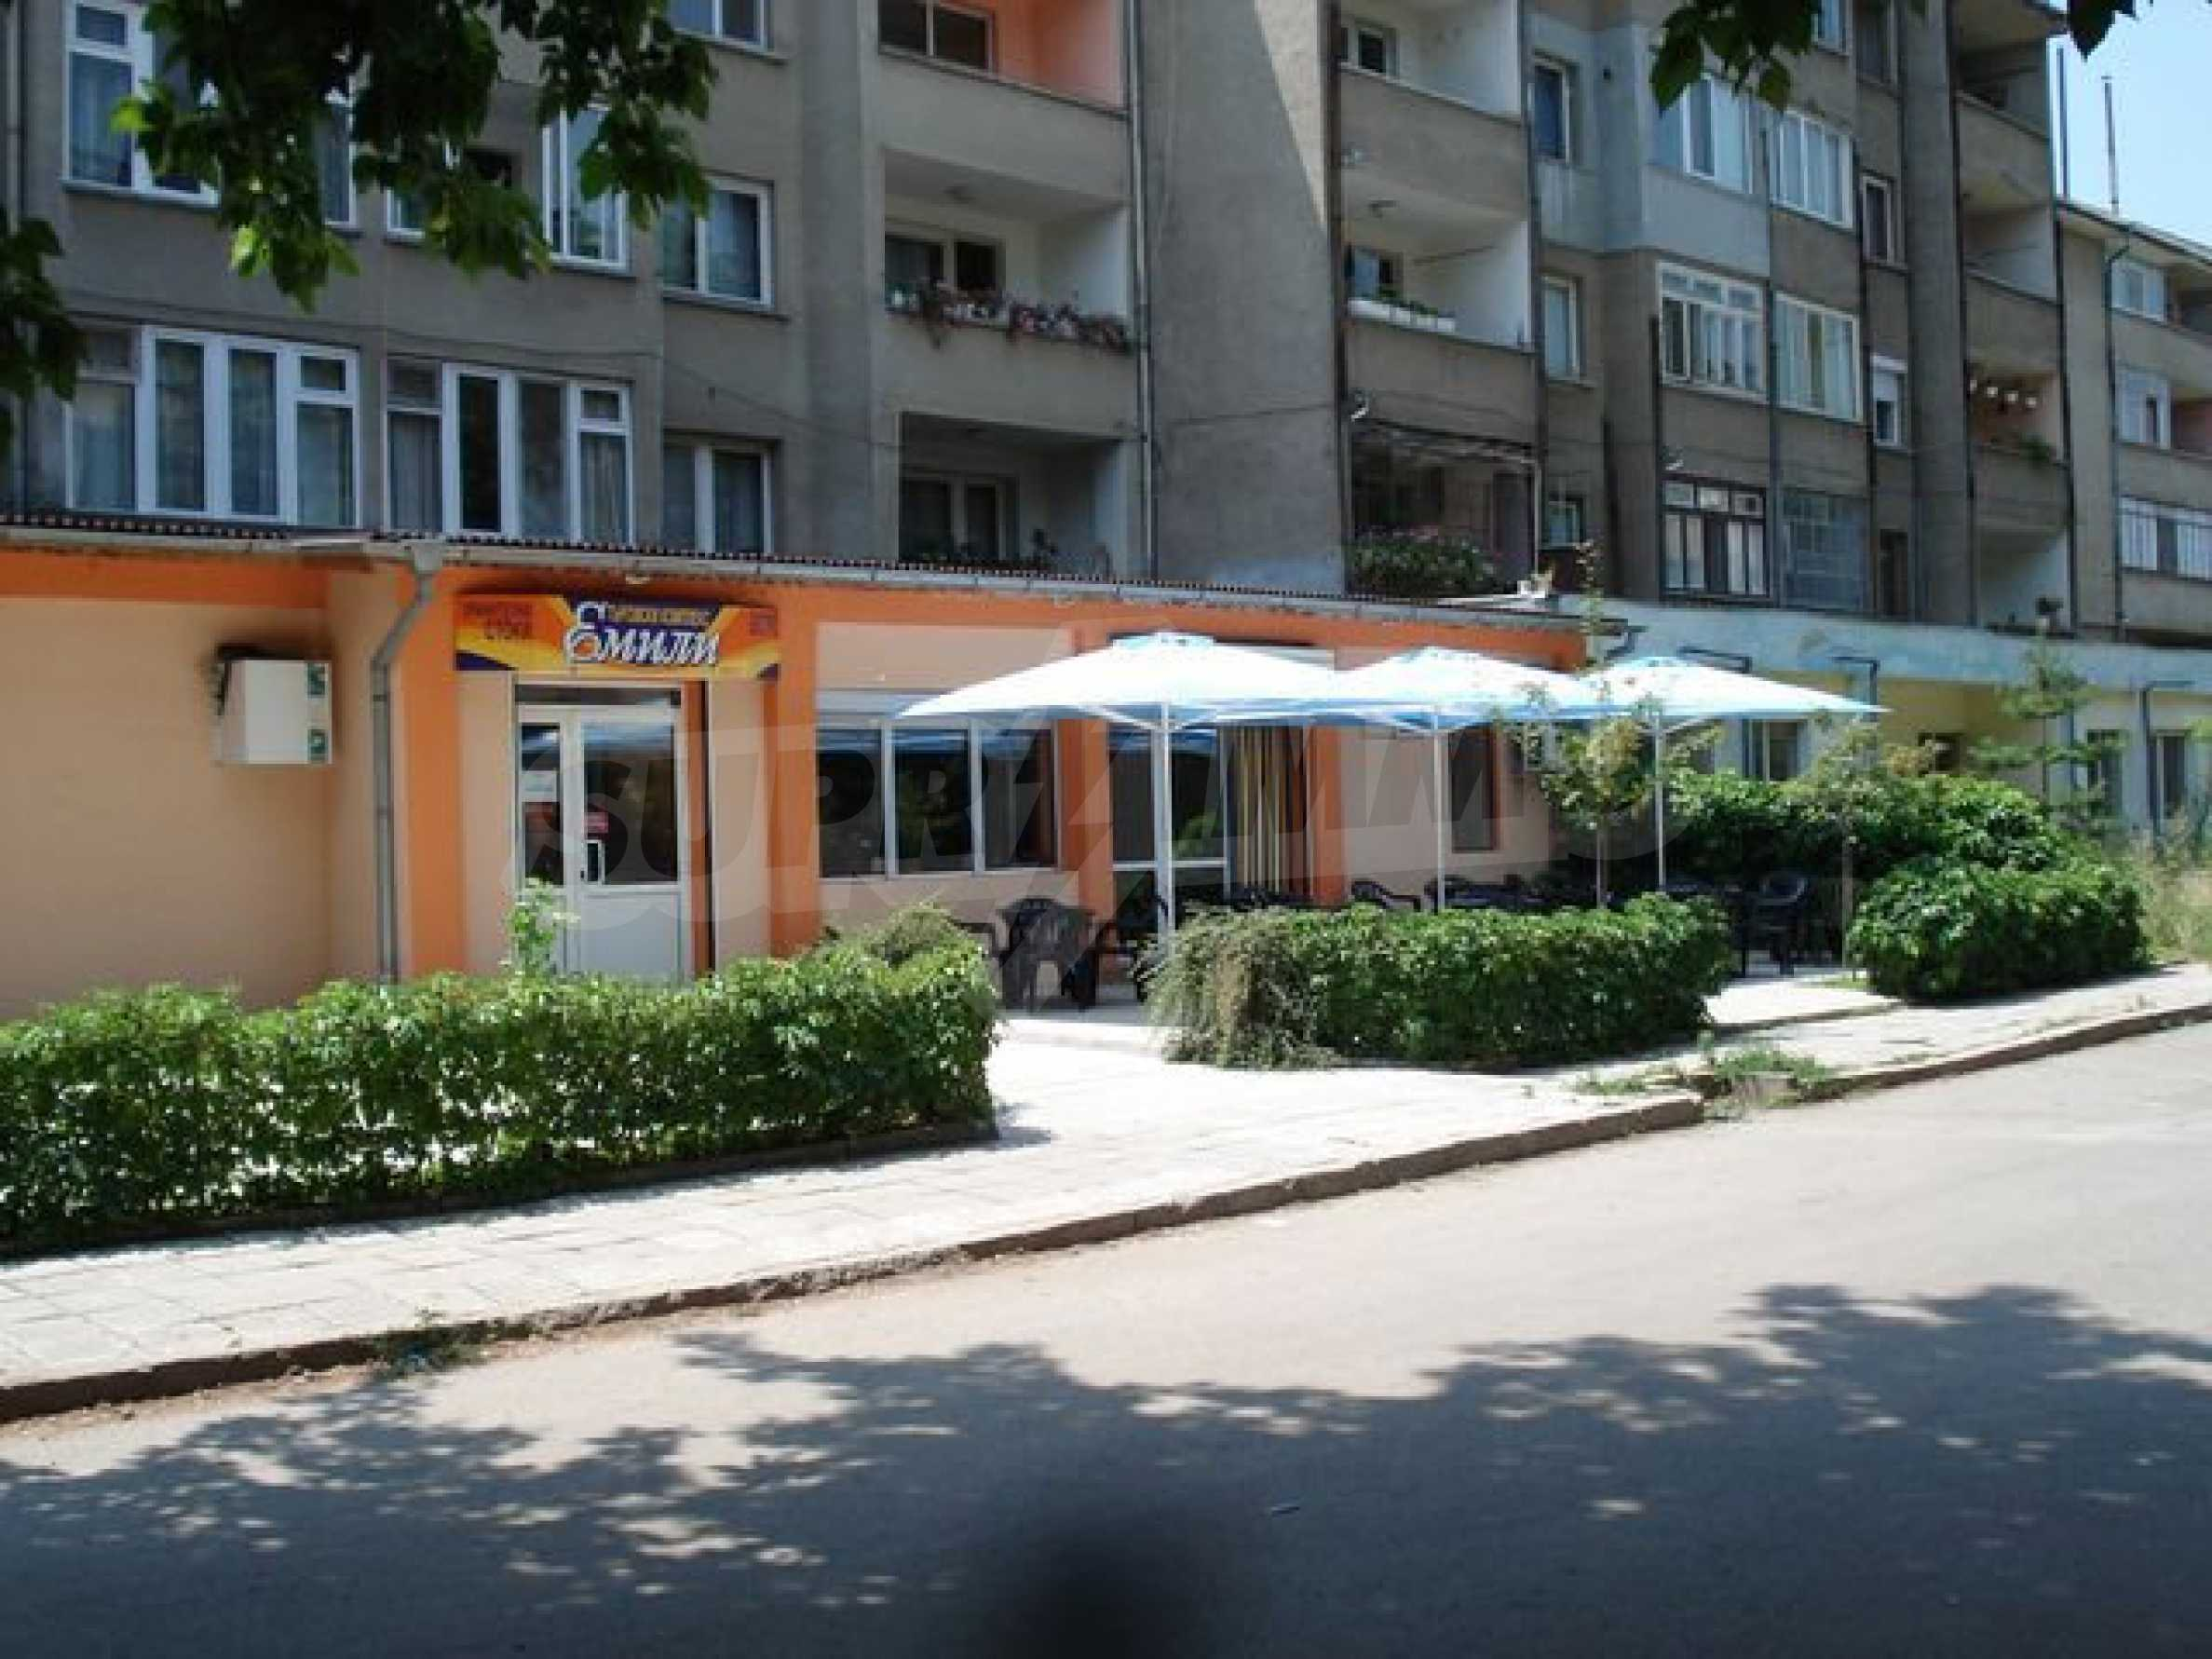 Food shop and bistro in Vidin